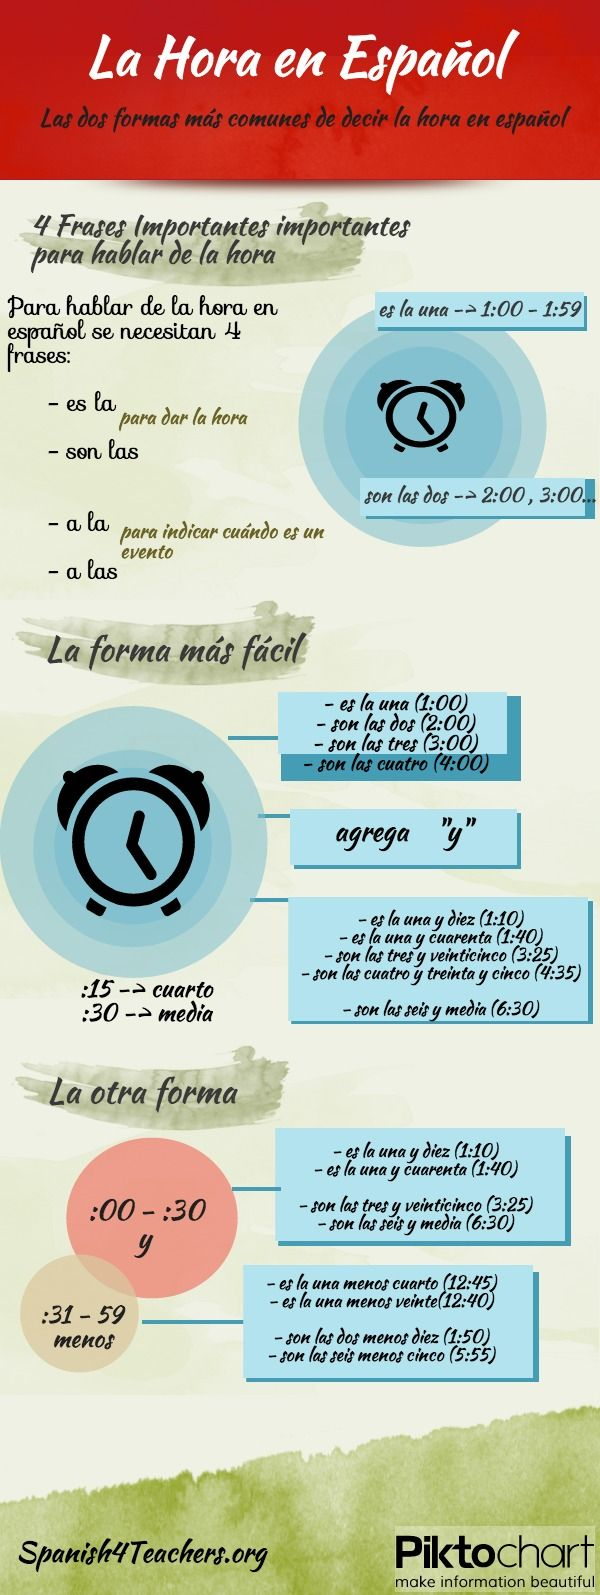 #Infographic La Hora en Español. More info about #LearningSpanish in #Spain La Herradura www.spanish-school-herradura.com teaching children +5 years, children, teenagers and adults.